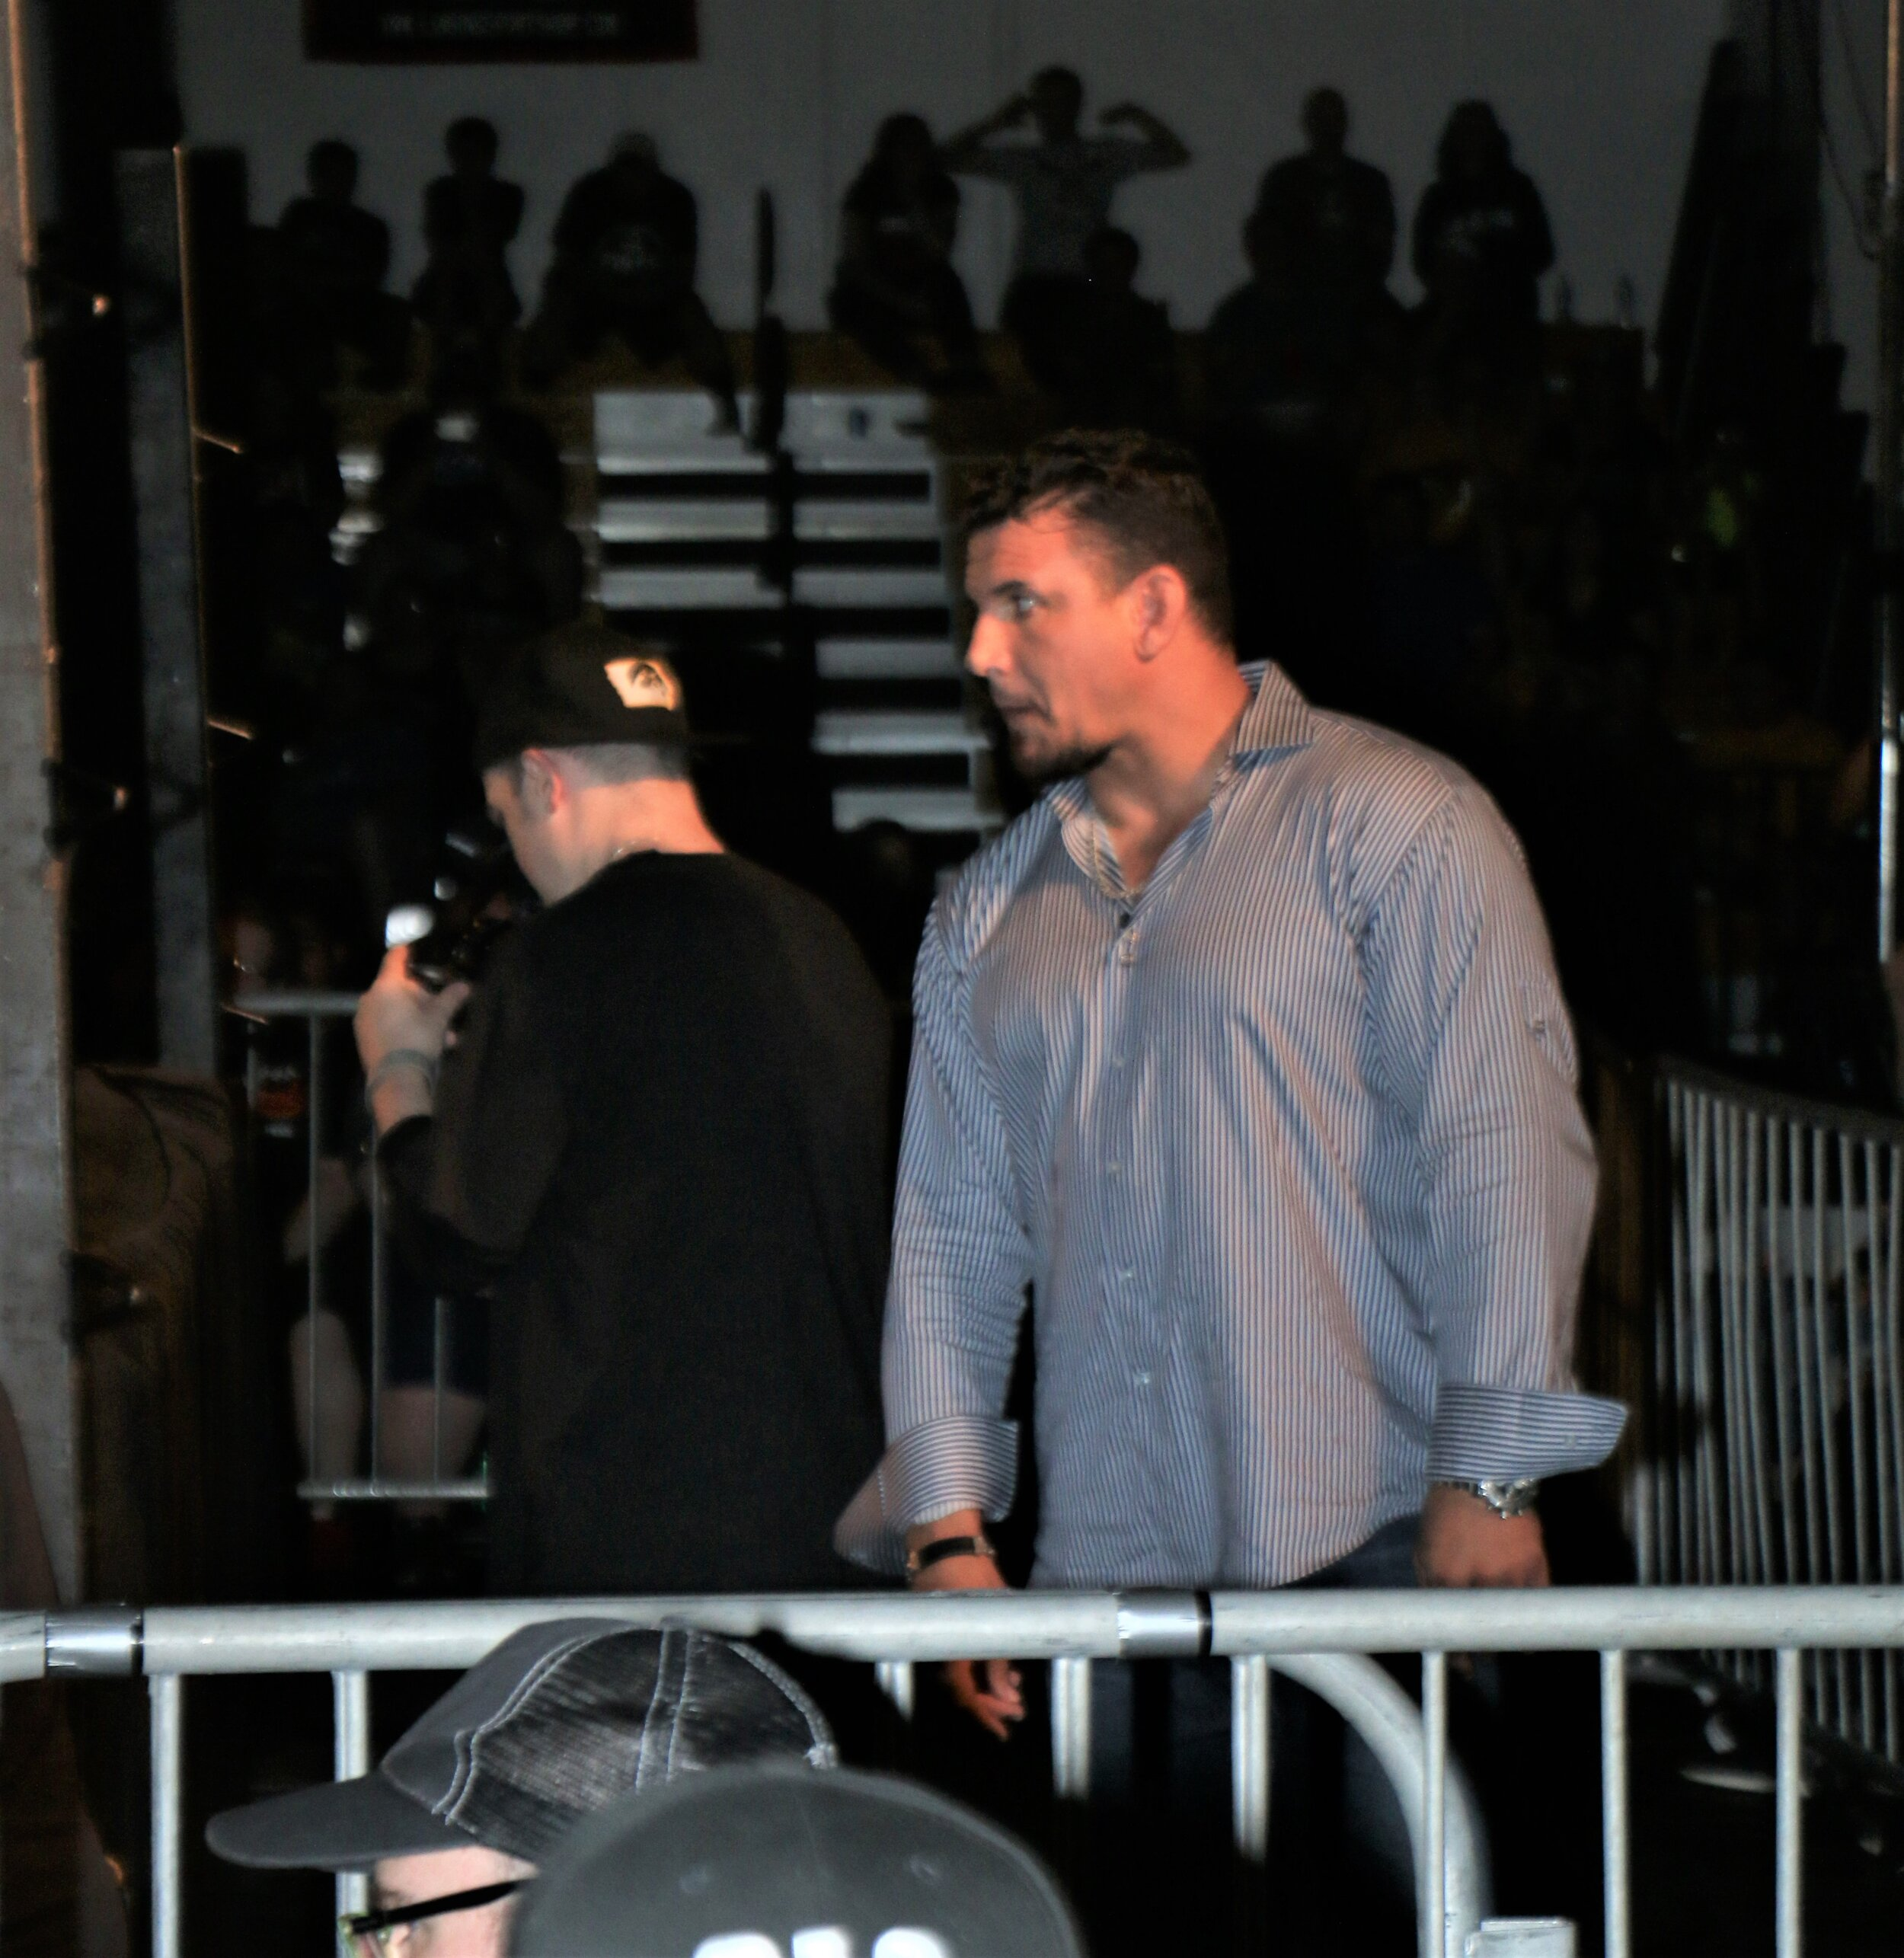 Frank Mir observes the Austin Aries-Alex Shelley match at ringside.